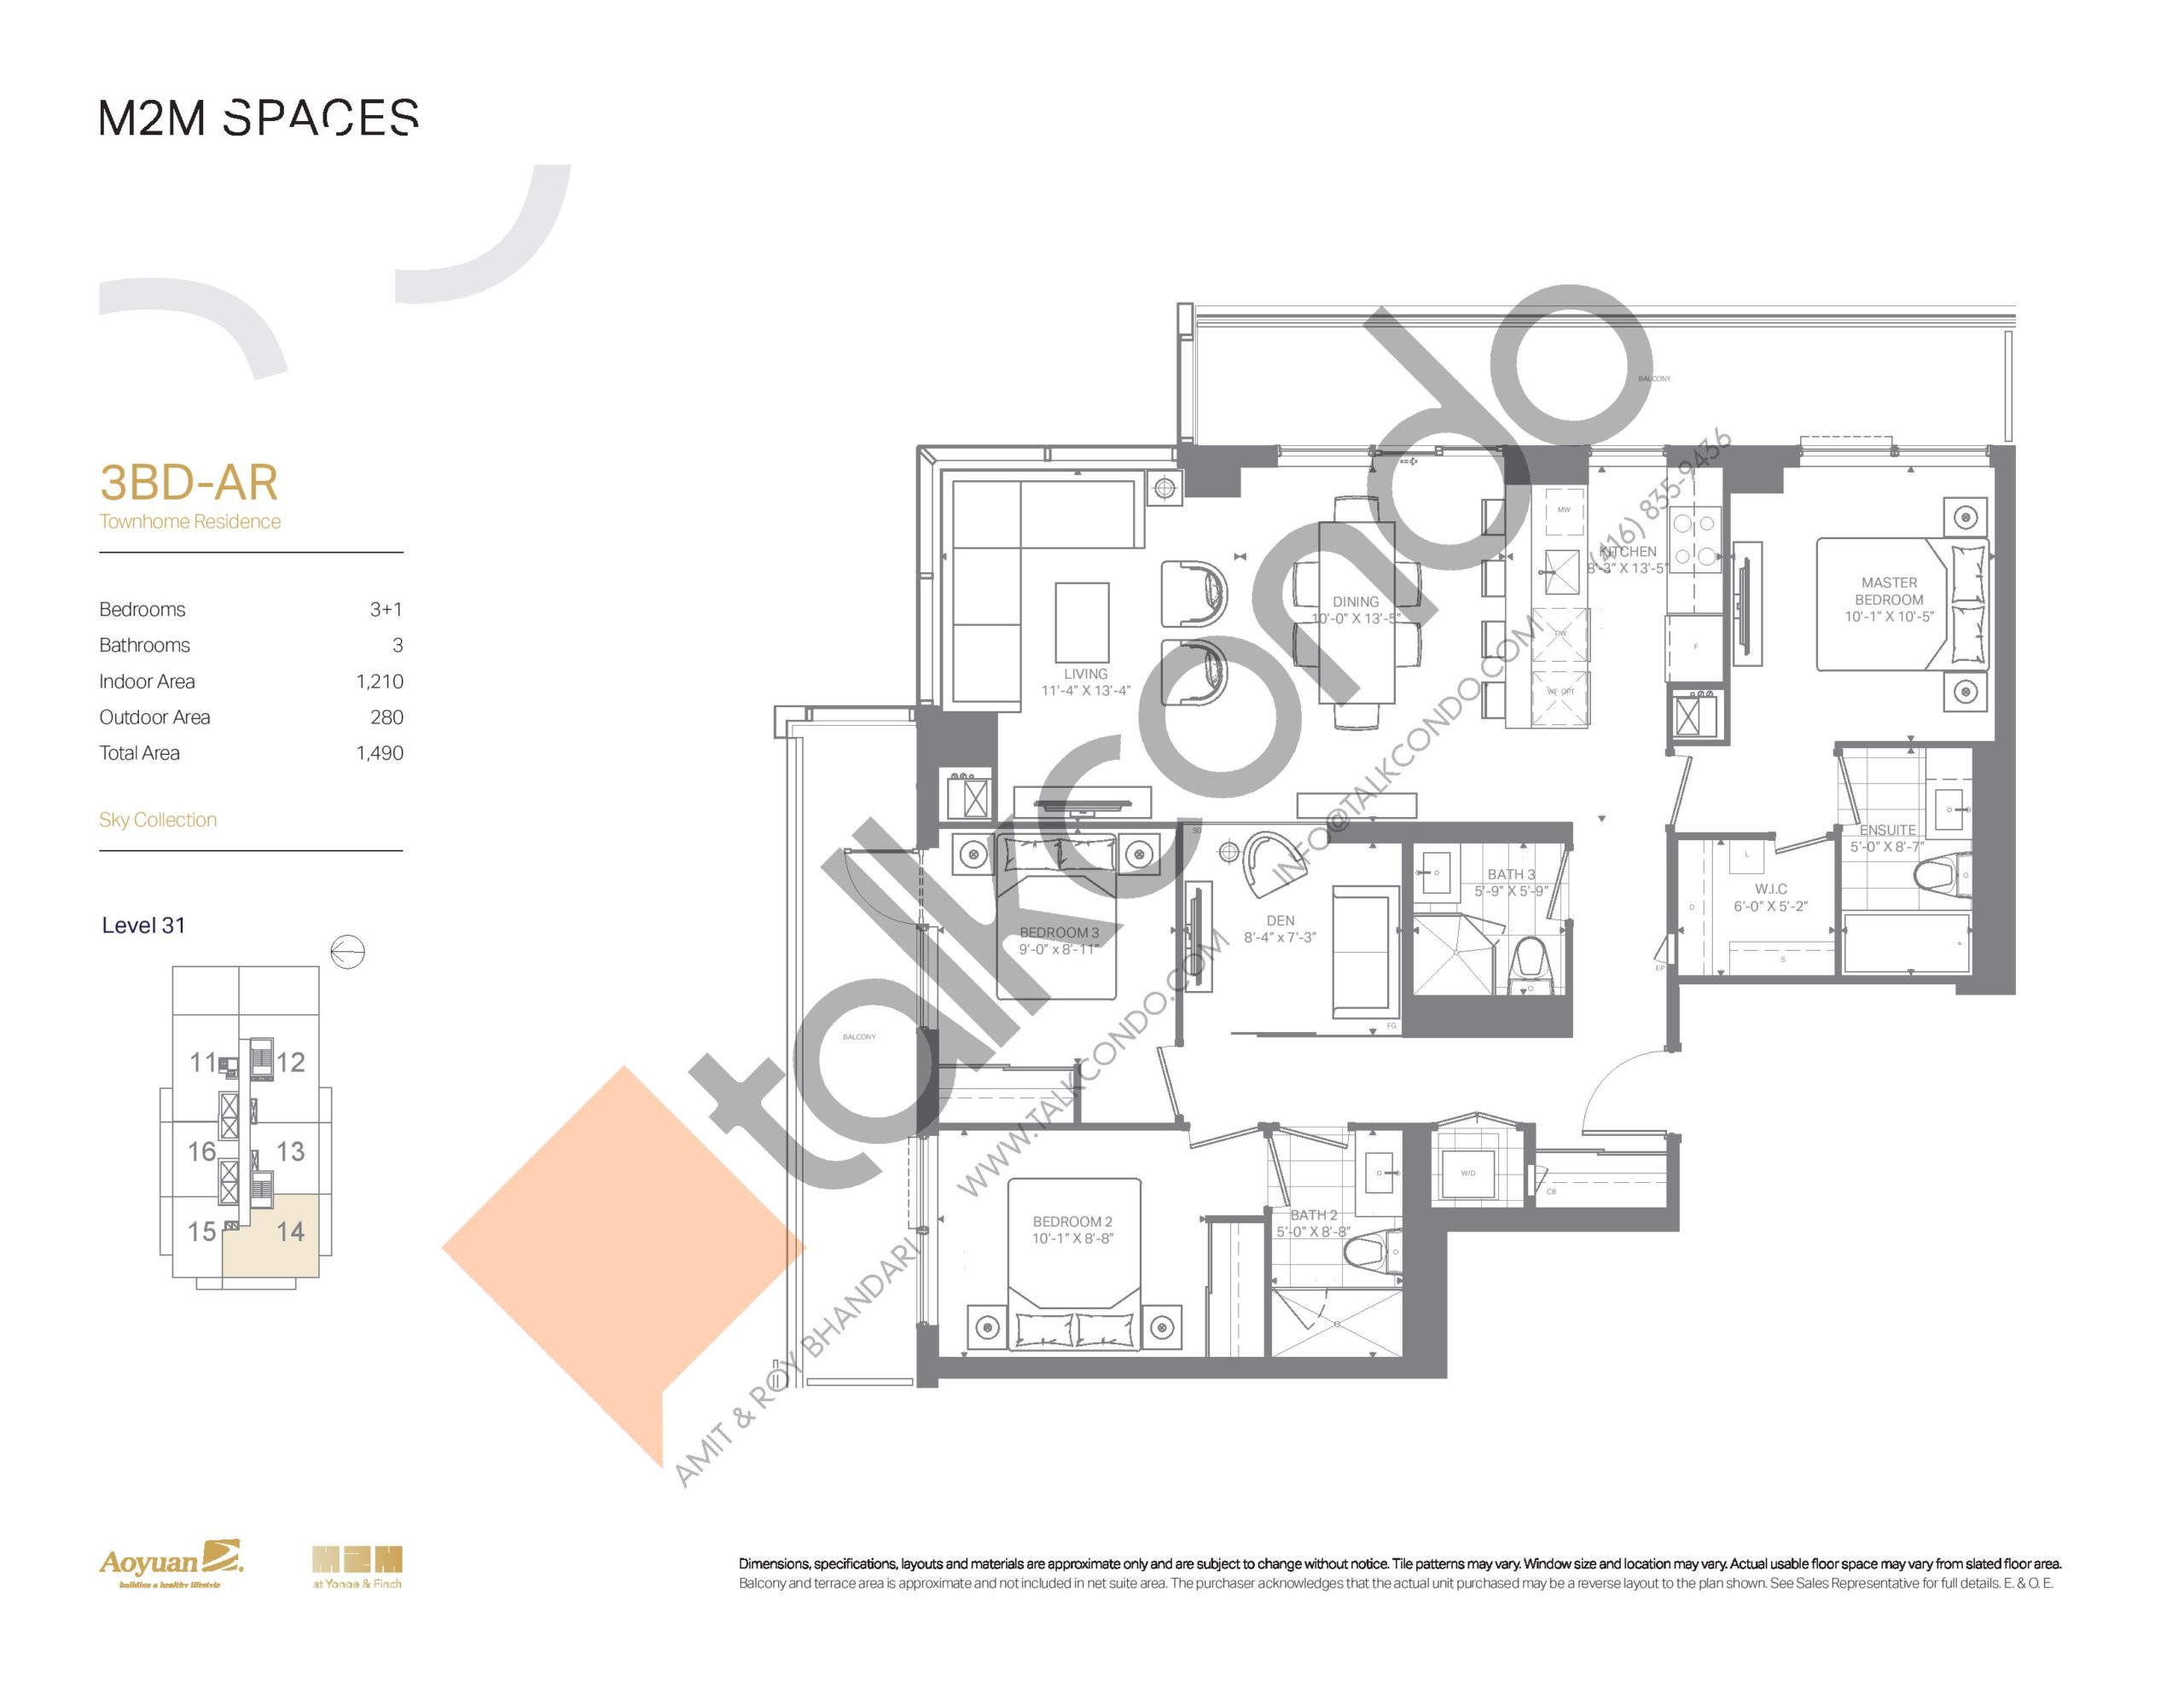 3BD-AR (Sky Collection) Floor Plan at M2M Spaces Condos - 1210 sq.ft